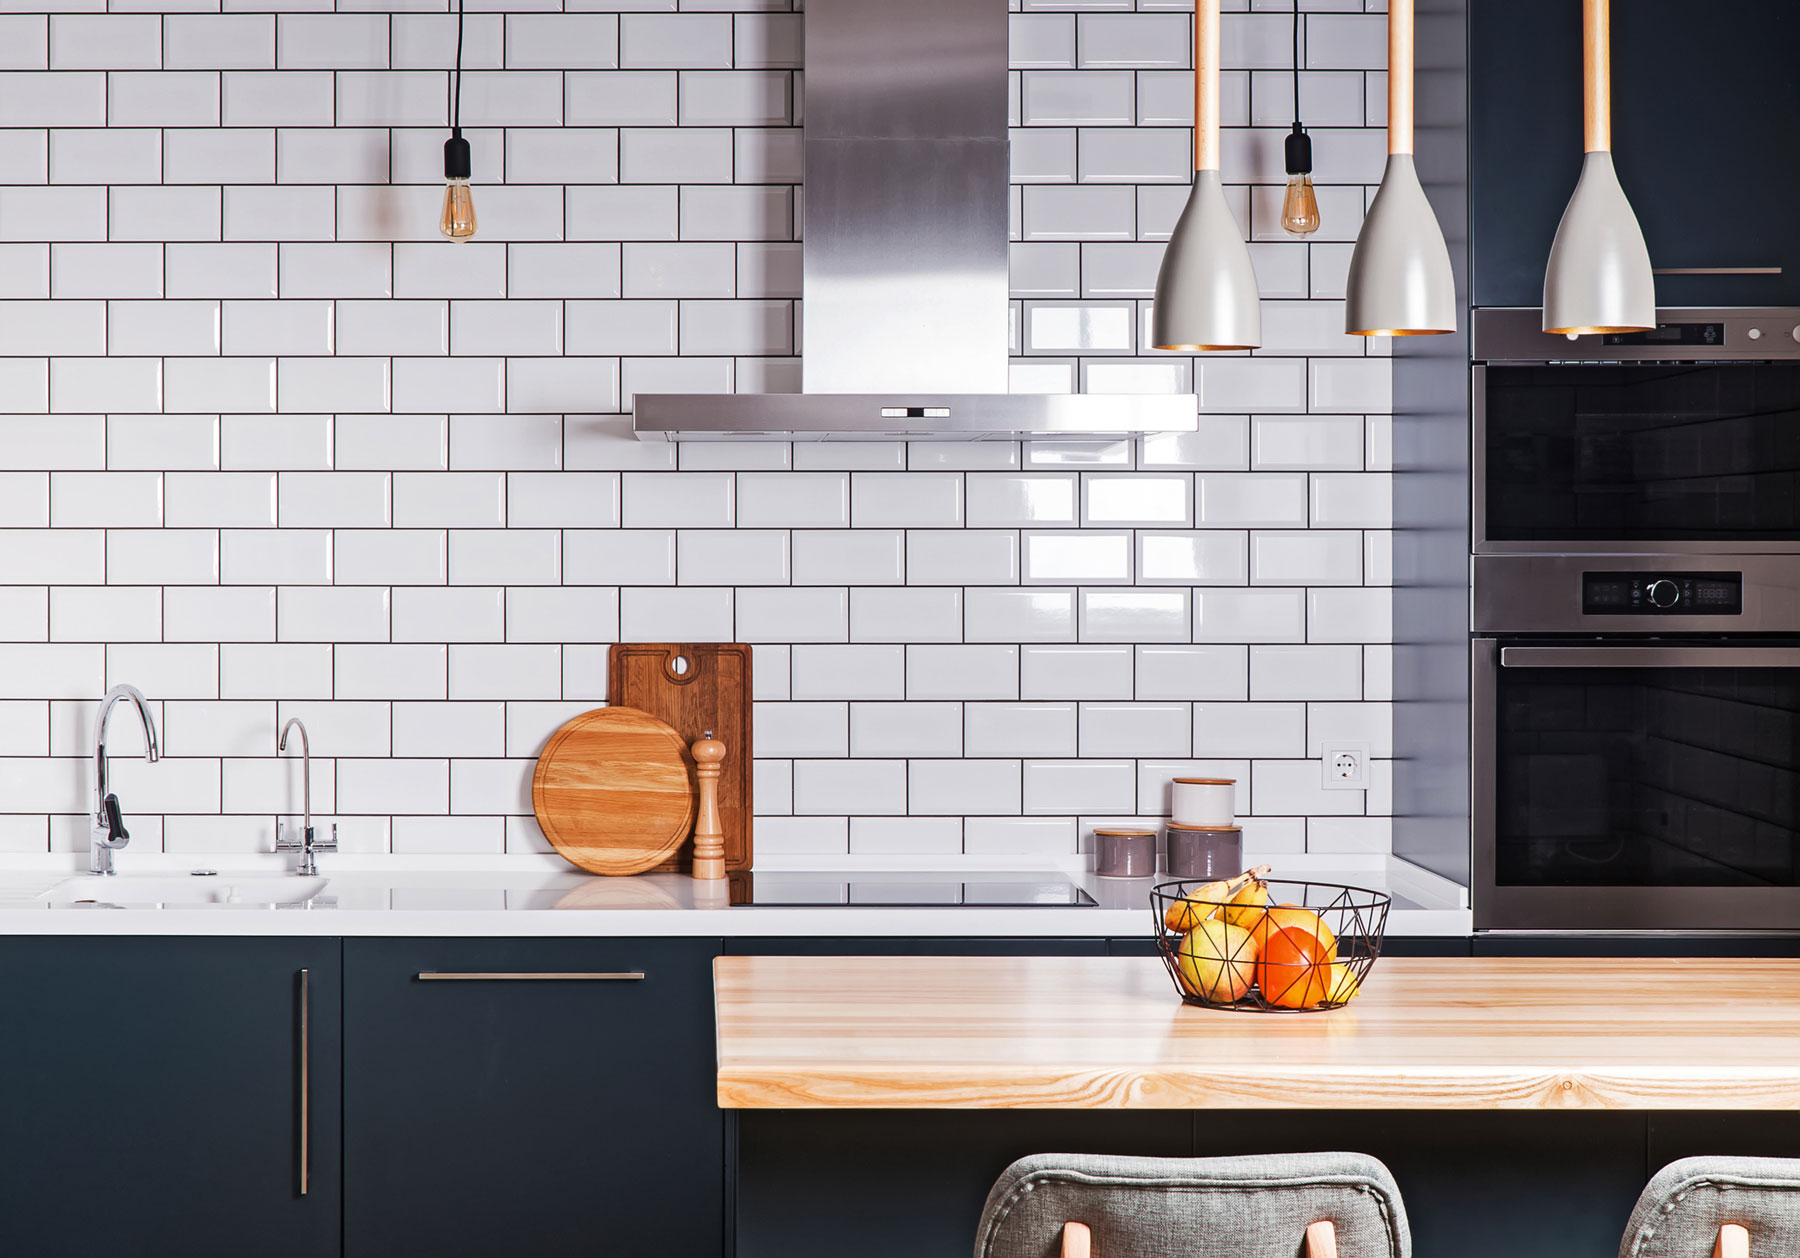 Kitchen Tile Backsplash Ideas You Need To See Right Now Real Simple - Backsplash-tile-ideas-collection